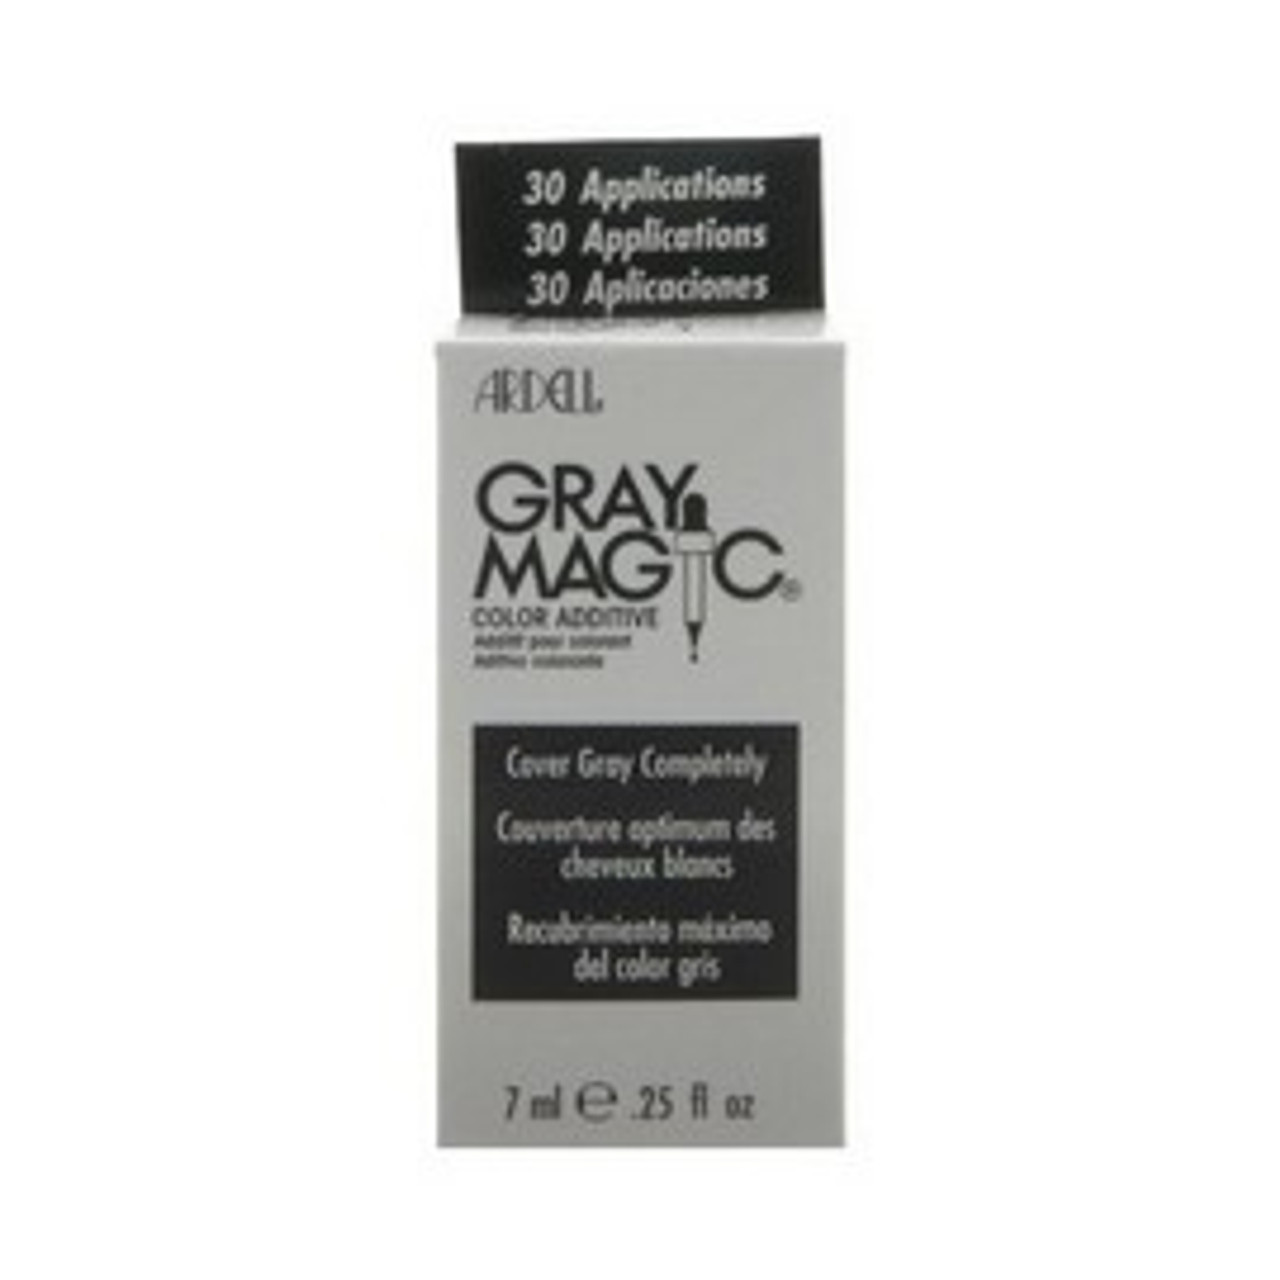 Ardell Gray Magic 1/4 oz